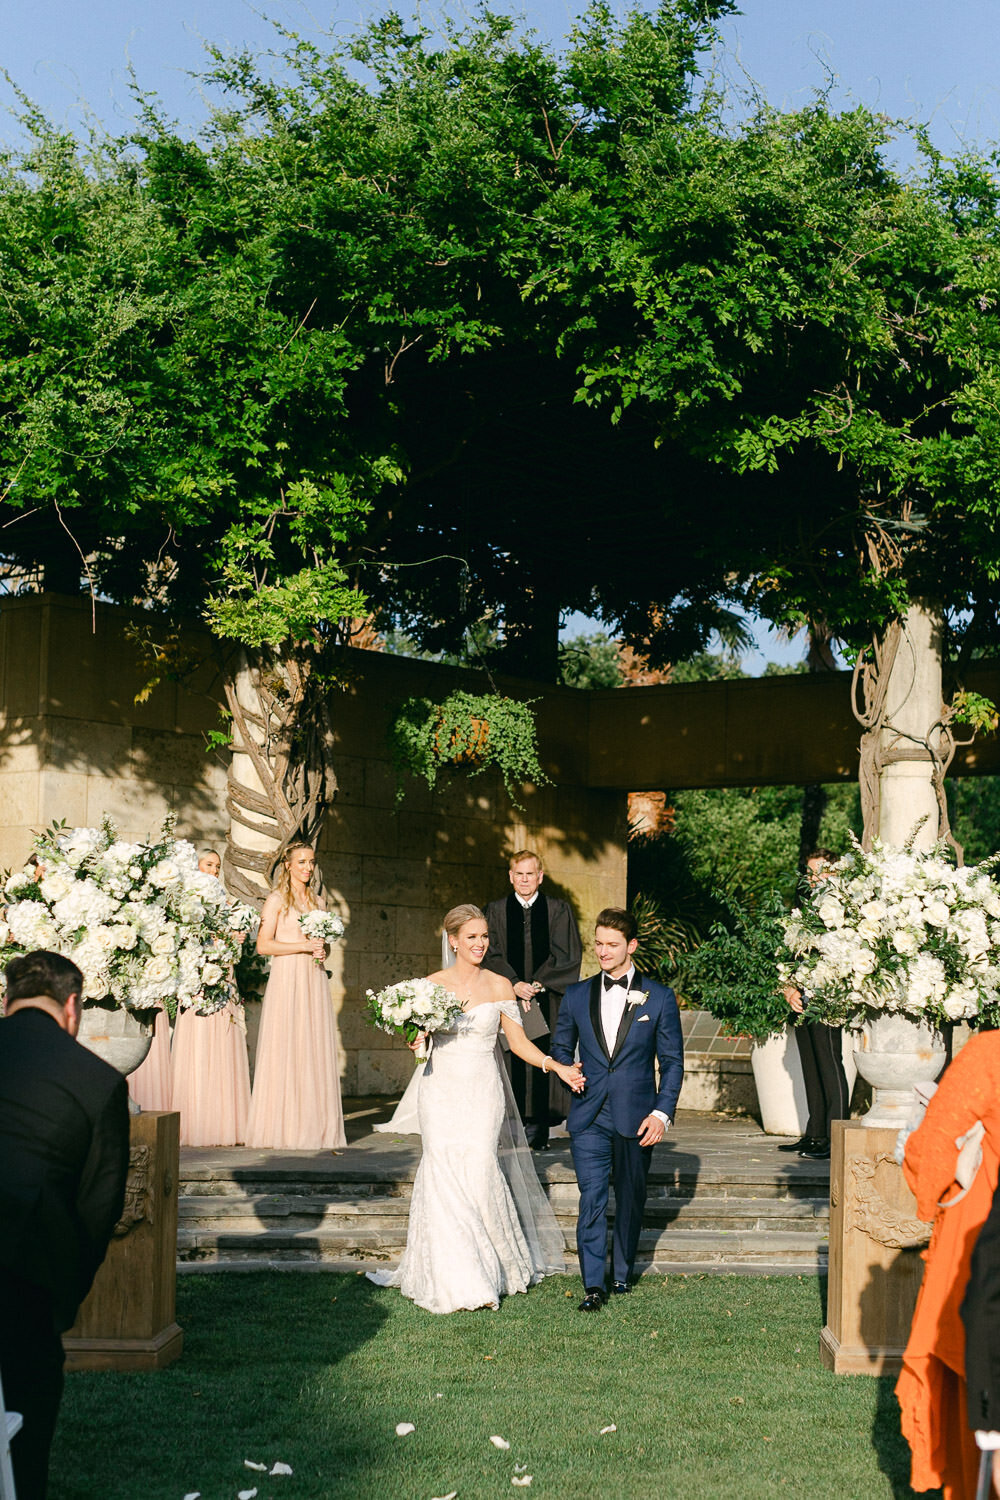 Bride and groom recessional laughing at ceremony altar Dallas Arboretum wedding black and white